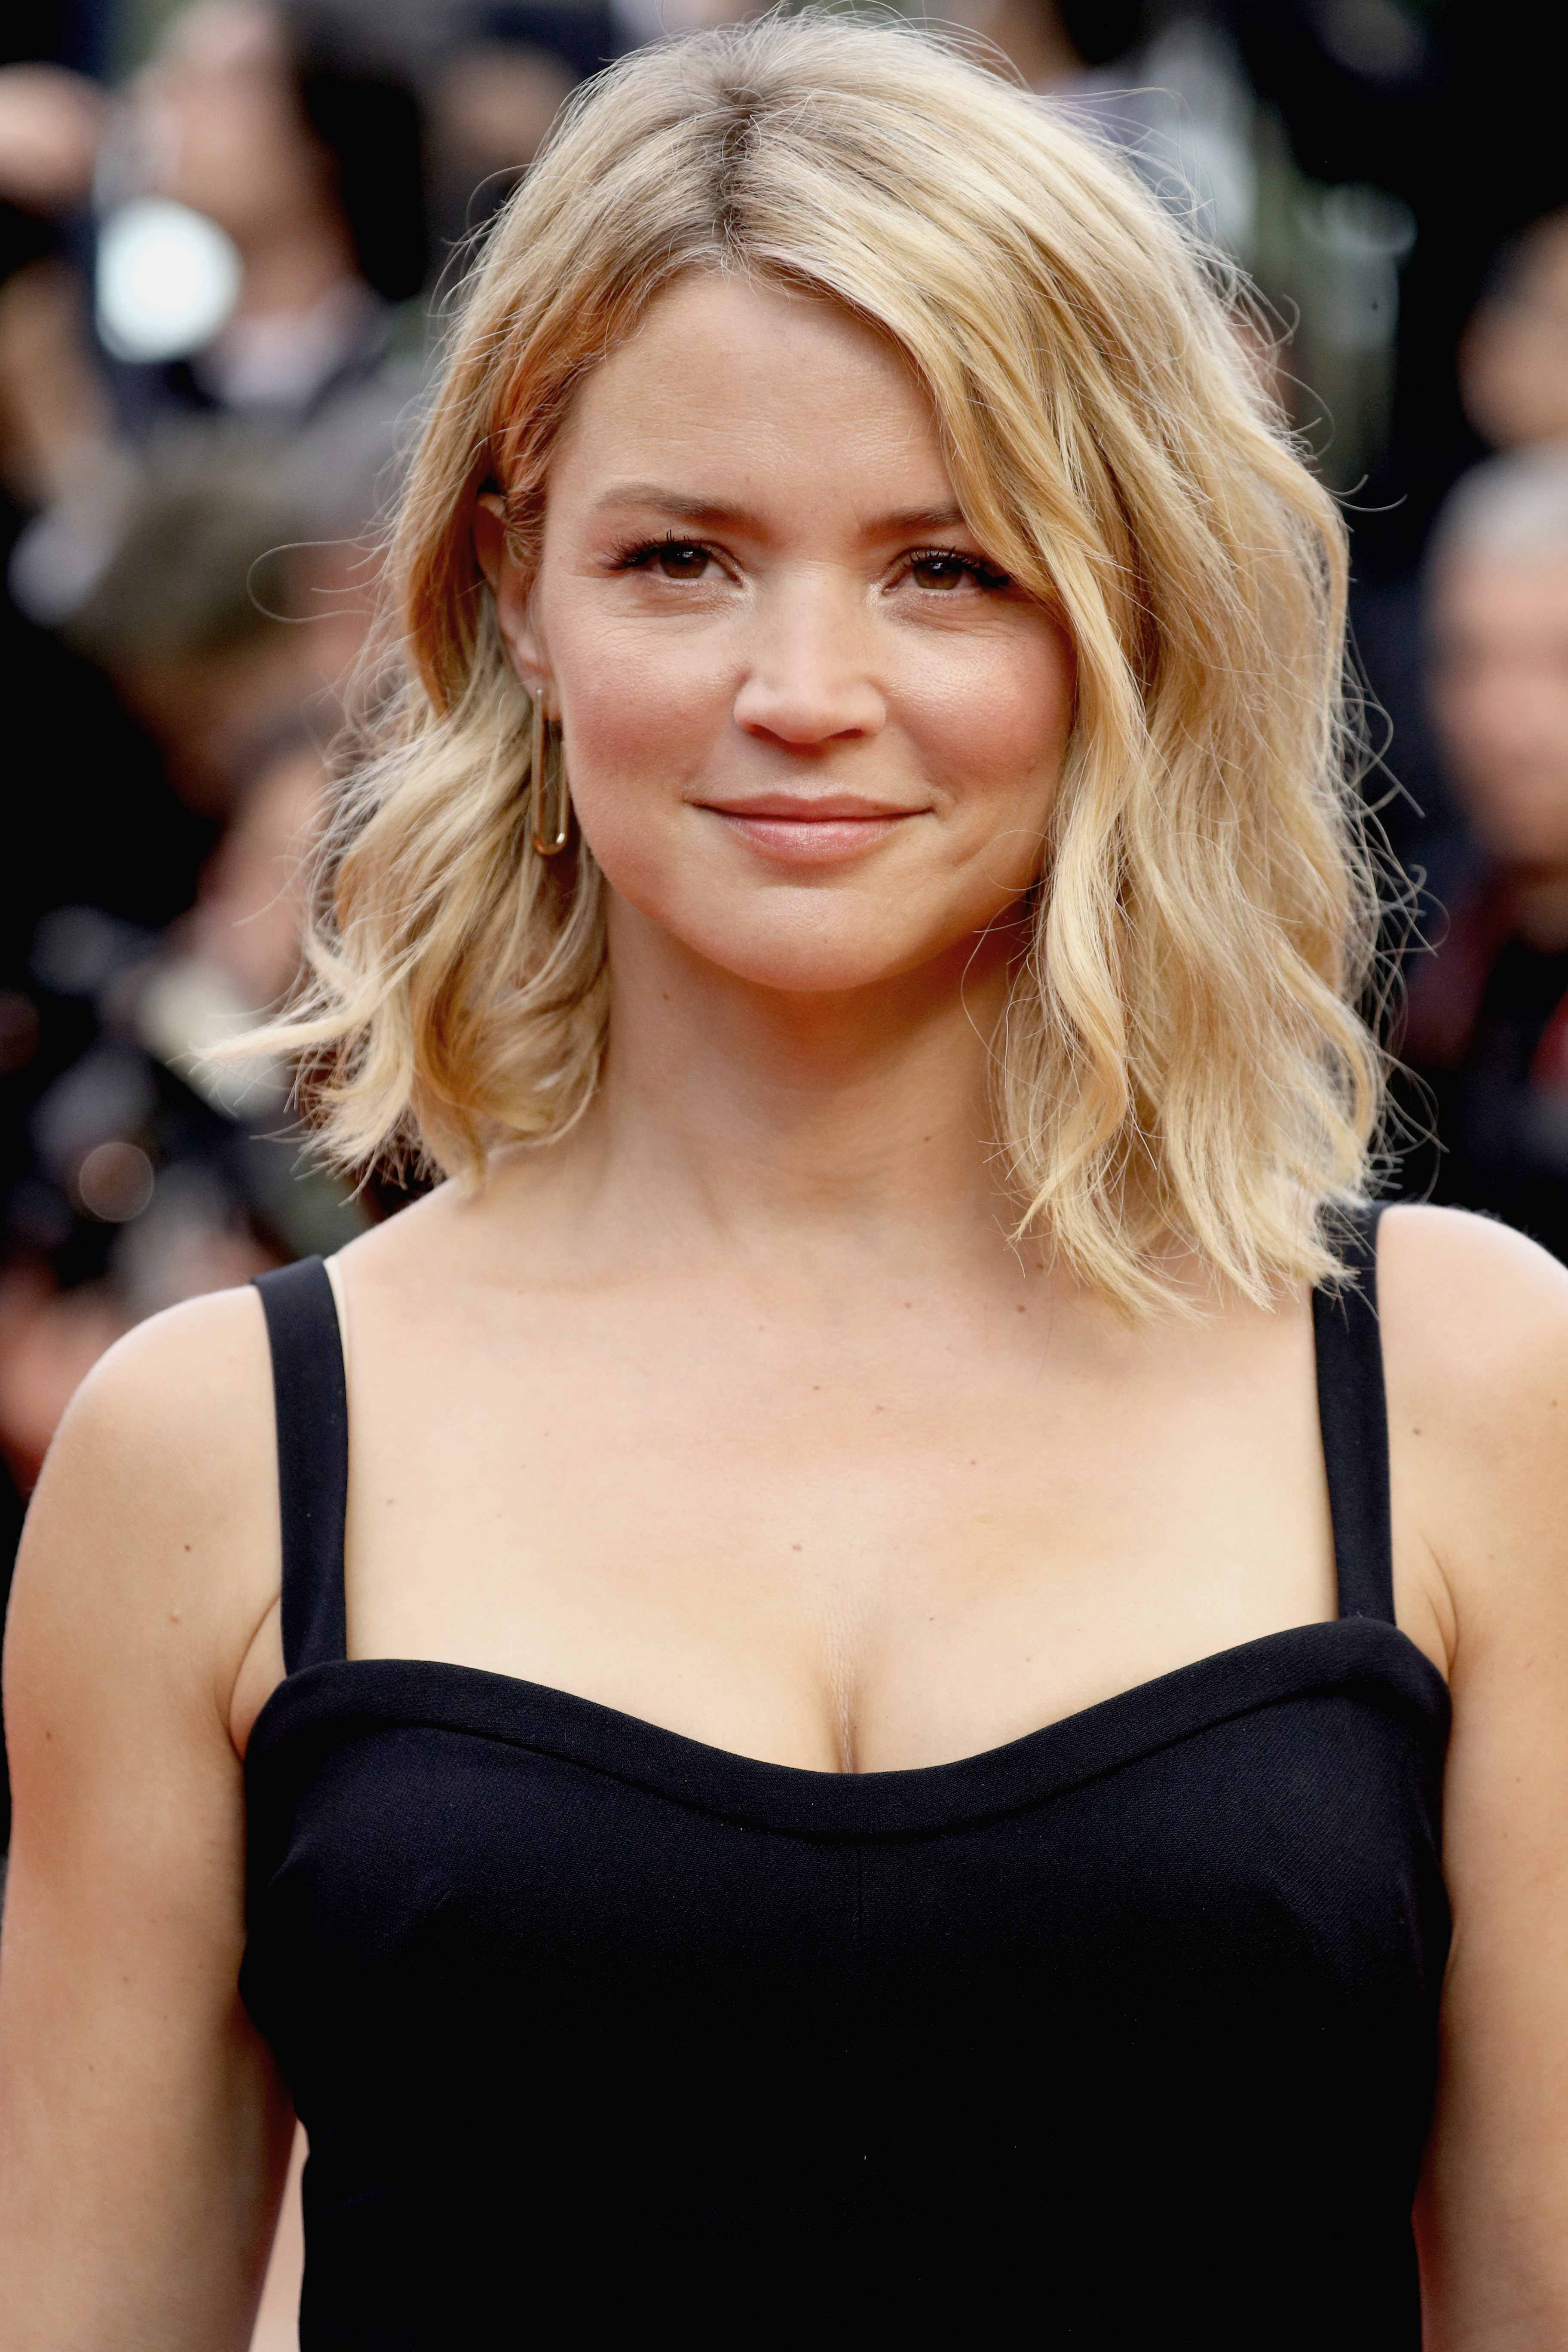 """CANNES, FRANCE - MAY 11: Virginie Efira attends the """"Cafe Society"""" premiere and the Opening Night Gala during the 69th annual Cannes Film Festival at the Palais des Festivals on May 11, 2016 in Cannes, France. (Photo by Andreas Rentz/Getty Images)"""